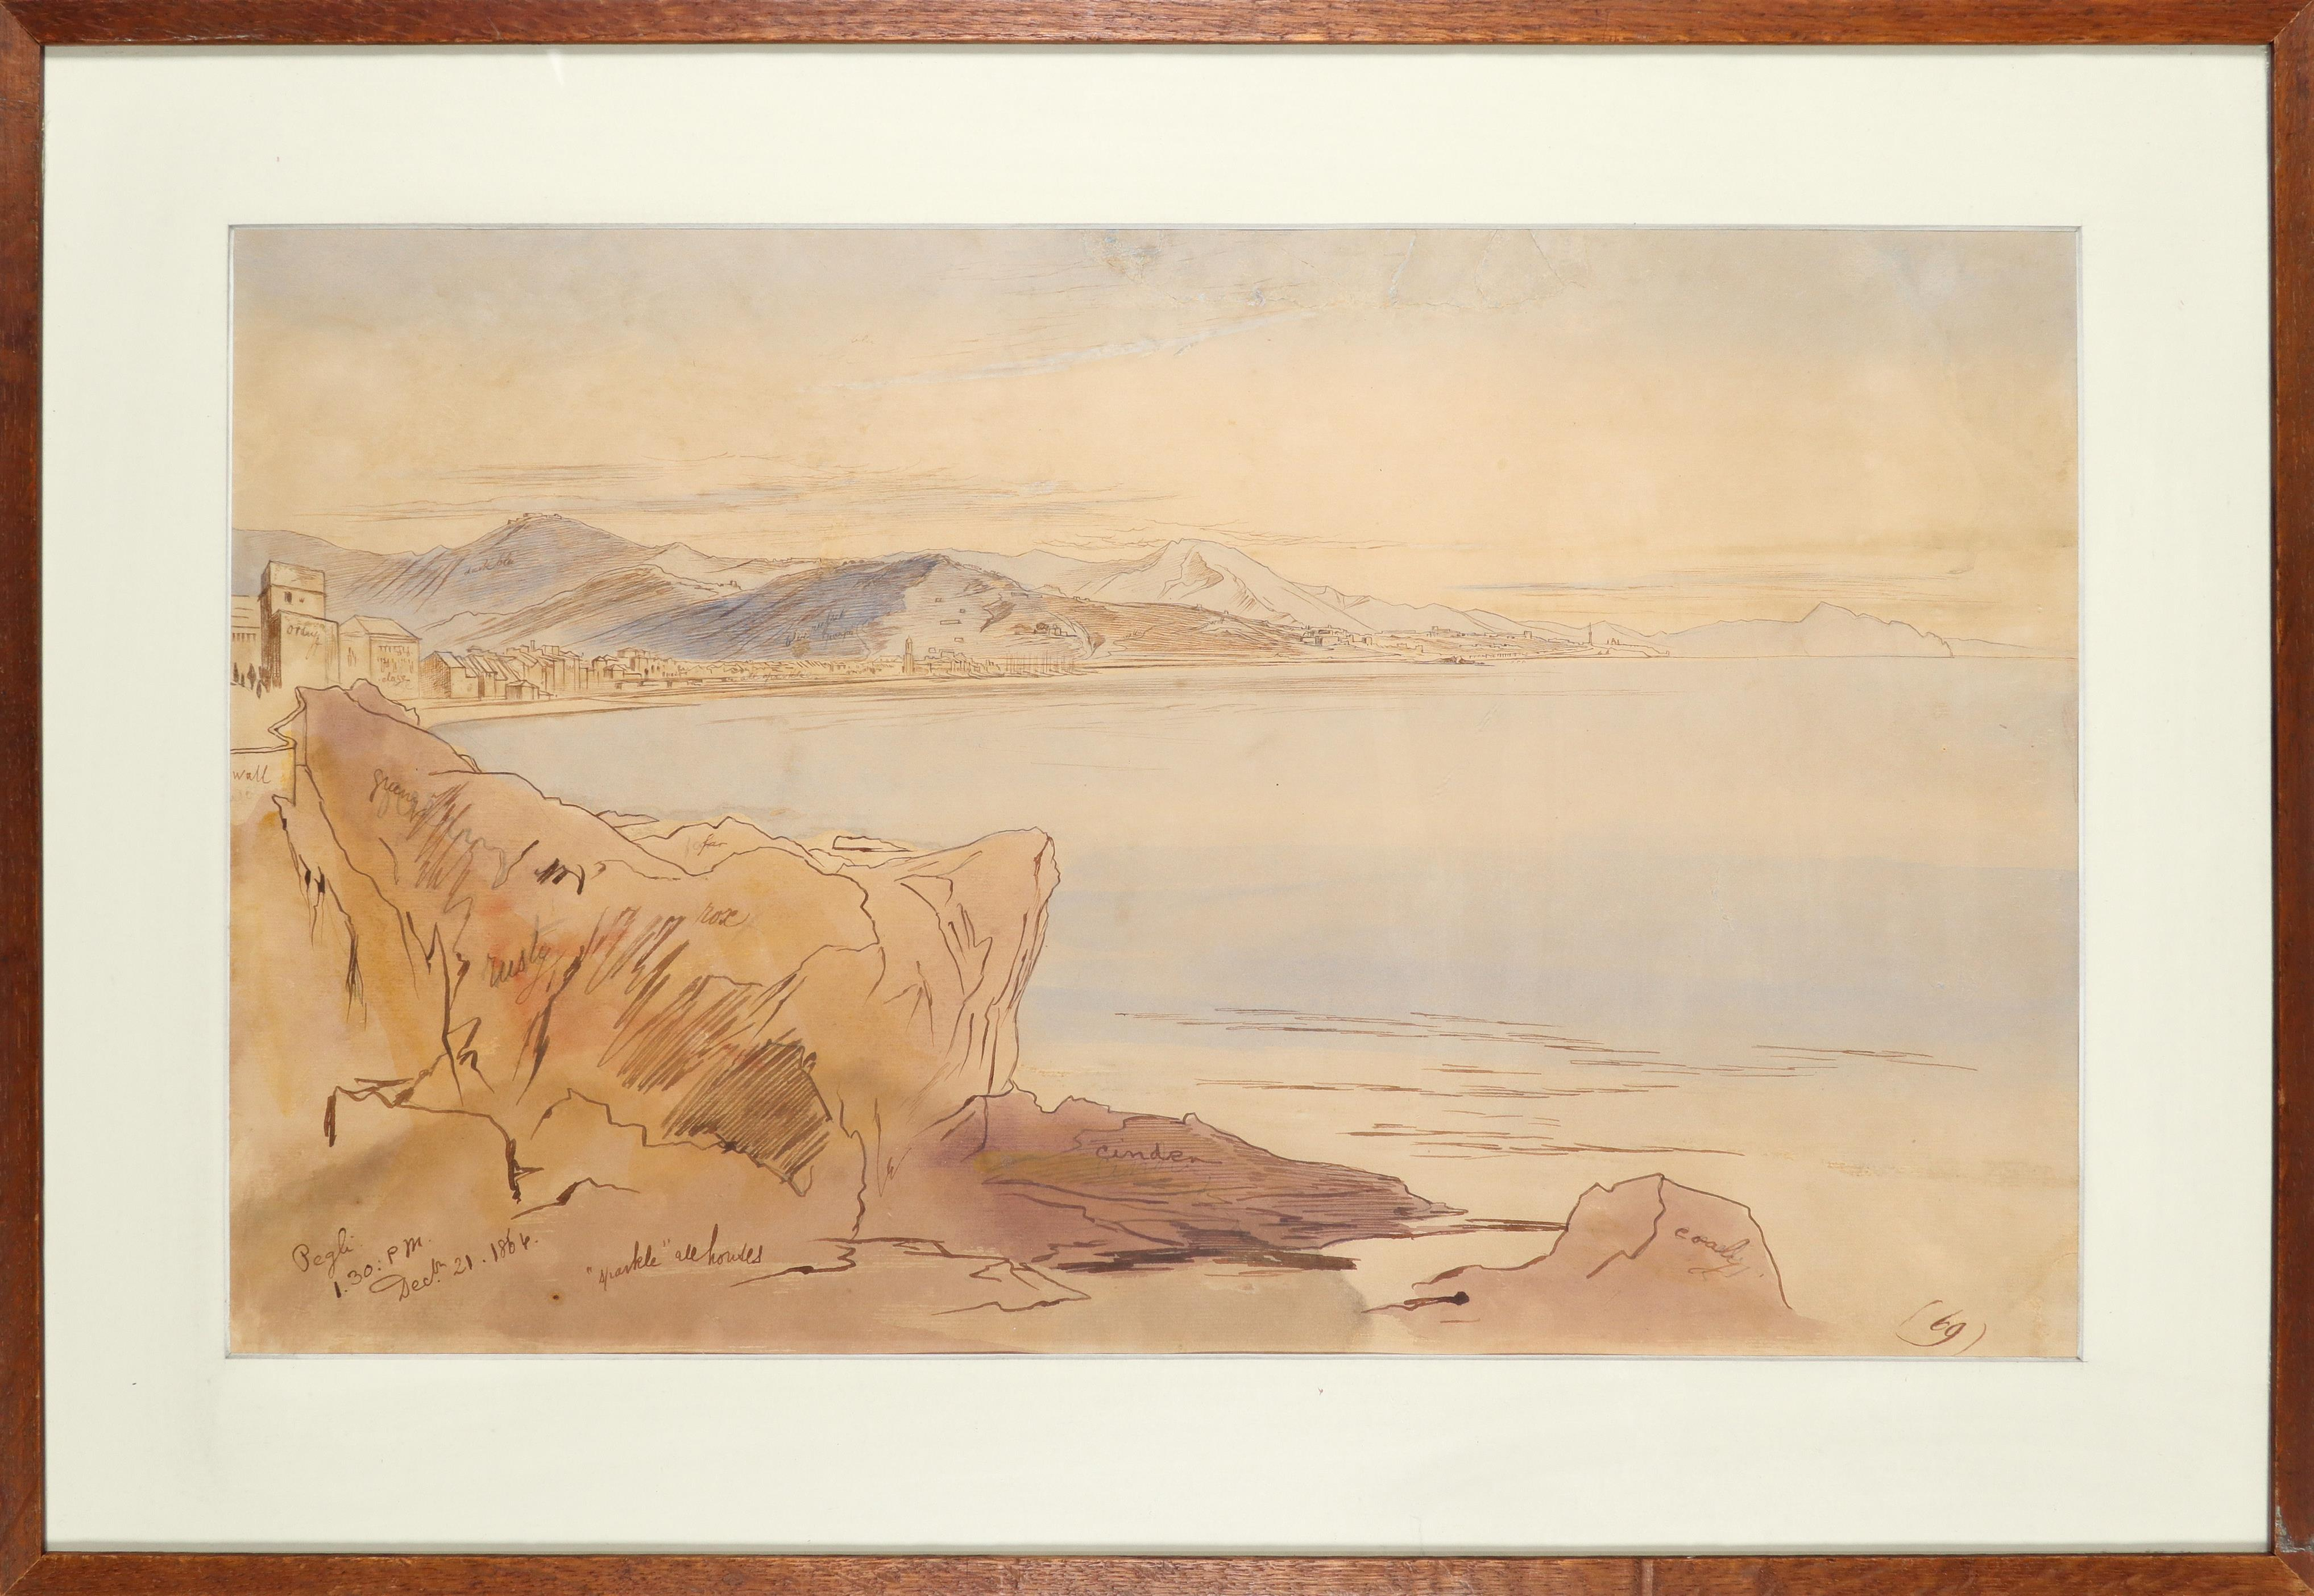 Edward Lear (1812-1888) A view of Pegli, Italy Inscribed and dated Pegli/1.30:pm/Dec 21 1864 ( - Image 2 of 3